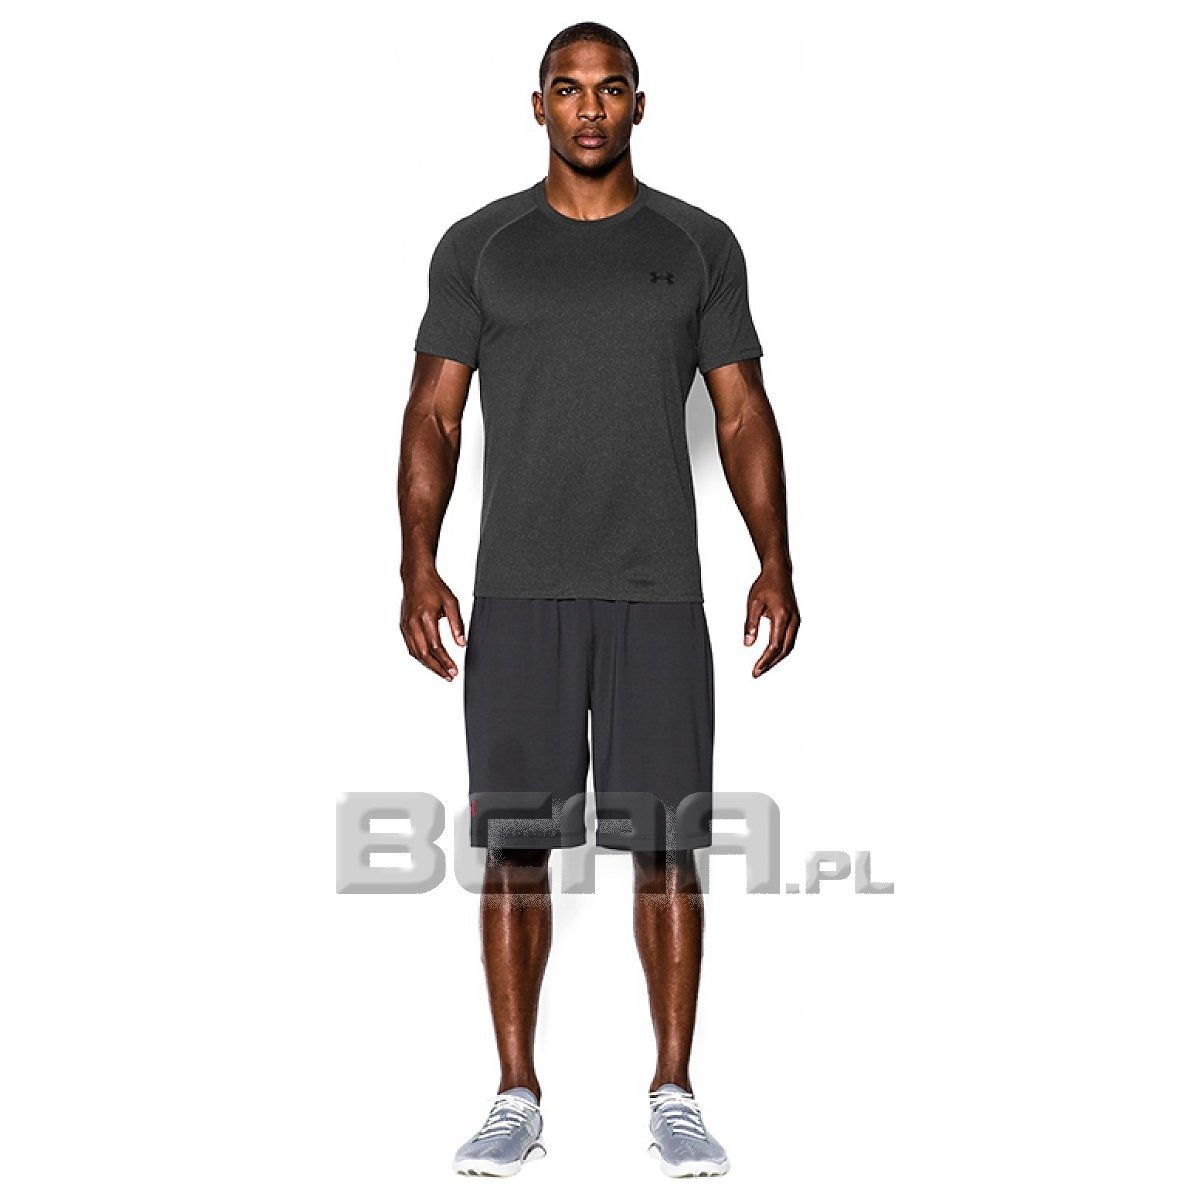 Men S Tech Short Sleeve T Shirt 1228539 090 Under Armour